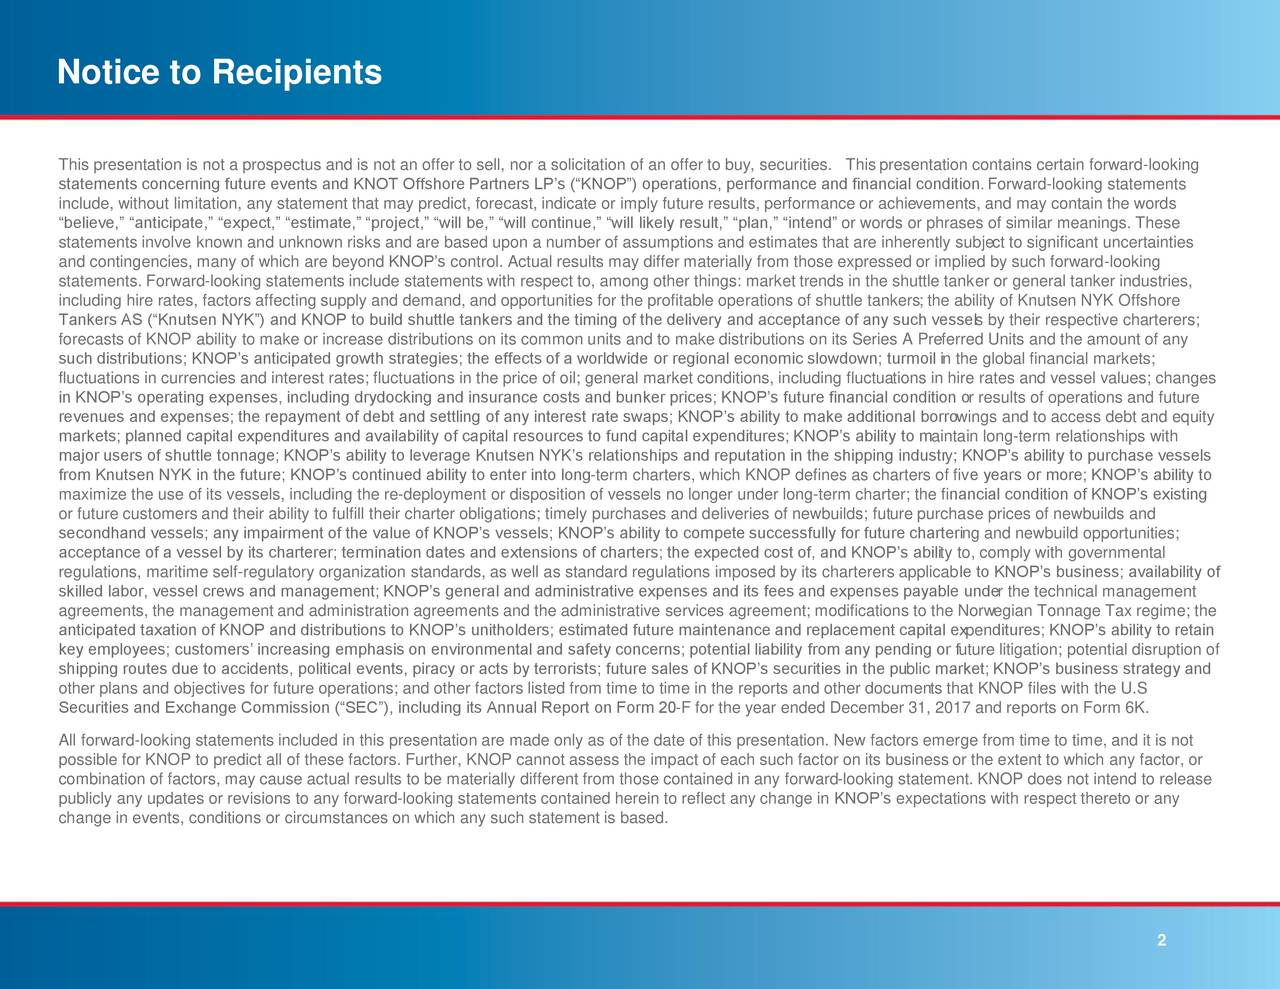 """This presentation is not a prospectus and is not an offer to sell, nor a solicitation of an offer to buy, securities. This presentation contains certain forward-looking statements concerning future events and KNOT Offshore Partners LP's (""""KNOP"""") operations, performance and financial condition.Forward-looking statements include, without limitation, any statement that may predict, forecast, indicate or imply future results, performance or achievements, and may contain the words """"believe,"""" """"anticipate,"""" """"expect,"""" """"estimate,"""" """"project,"""" """"will be,"""" """"will continue,"""" """"will likely result,"""" """"plan,"""" """"intend"""" or words or phrases of similar meanings. These statements involve known and unknown risks and are based upon a number of assumptions and estimates that are inherently subject to significant uncertainties and contingencies, many of which are beyond KNOP's control. Actual results may differ materially from those expressed or implied by such forward-looking statements. Forward-looking statements include statements with respect to, among other things: market trends in the shuttle tanker or general tanker industries, including hire rates, factors affecting supply and demand, and opportunities for the profitable operations of shuttle tankers; the ability of Knutsen NYK Offshore Tankers AS (""""Knutsen NYK"""") and KNOP to build shuttle tankers and the timing of the delivery and acceptance of any such vessels by their respective charterers; forecasts of KNOP ability to make or increase distributions on its common units and to make distributions on its Series A Preferred Units and the amount of any such distributions; KNOP's anticipated growth strategies; the effects of a worldwide or regional economic slowdown; turmoil in the global financial markets; fluctuations in currencies and interest rates; fluctuations in the price of oil; general market conditions, including fluctuations in hire rates and vessel values; changes in KNOP's operating expenses, including drydocking and insurance """